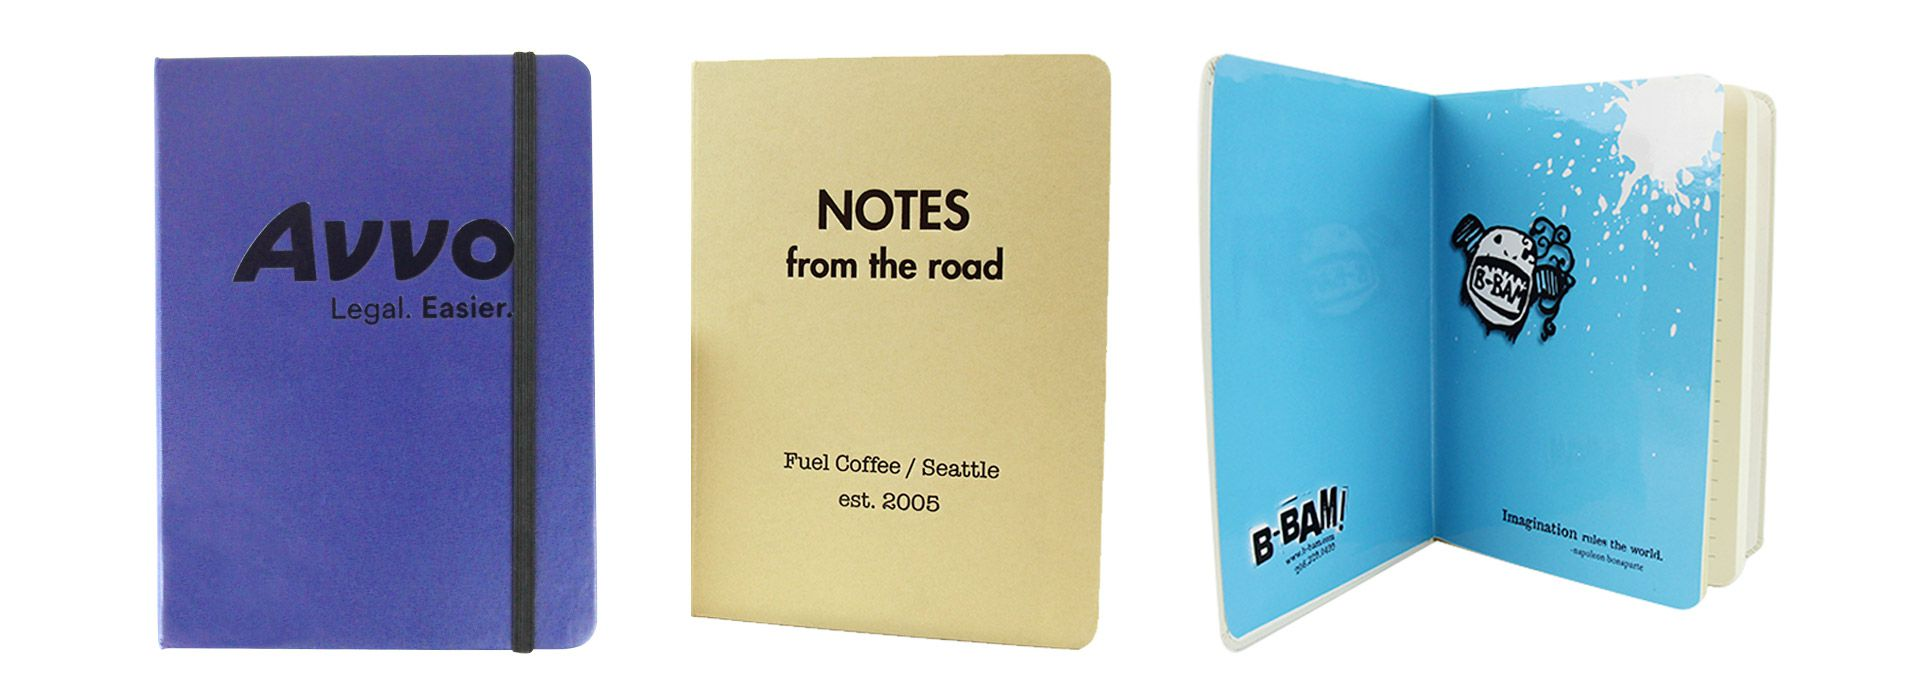 Custom Printed Promotional Corporate Logo Notebooks Seattle